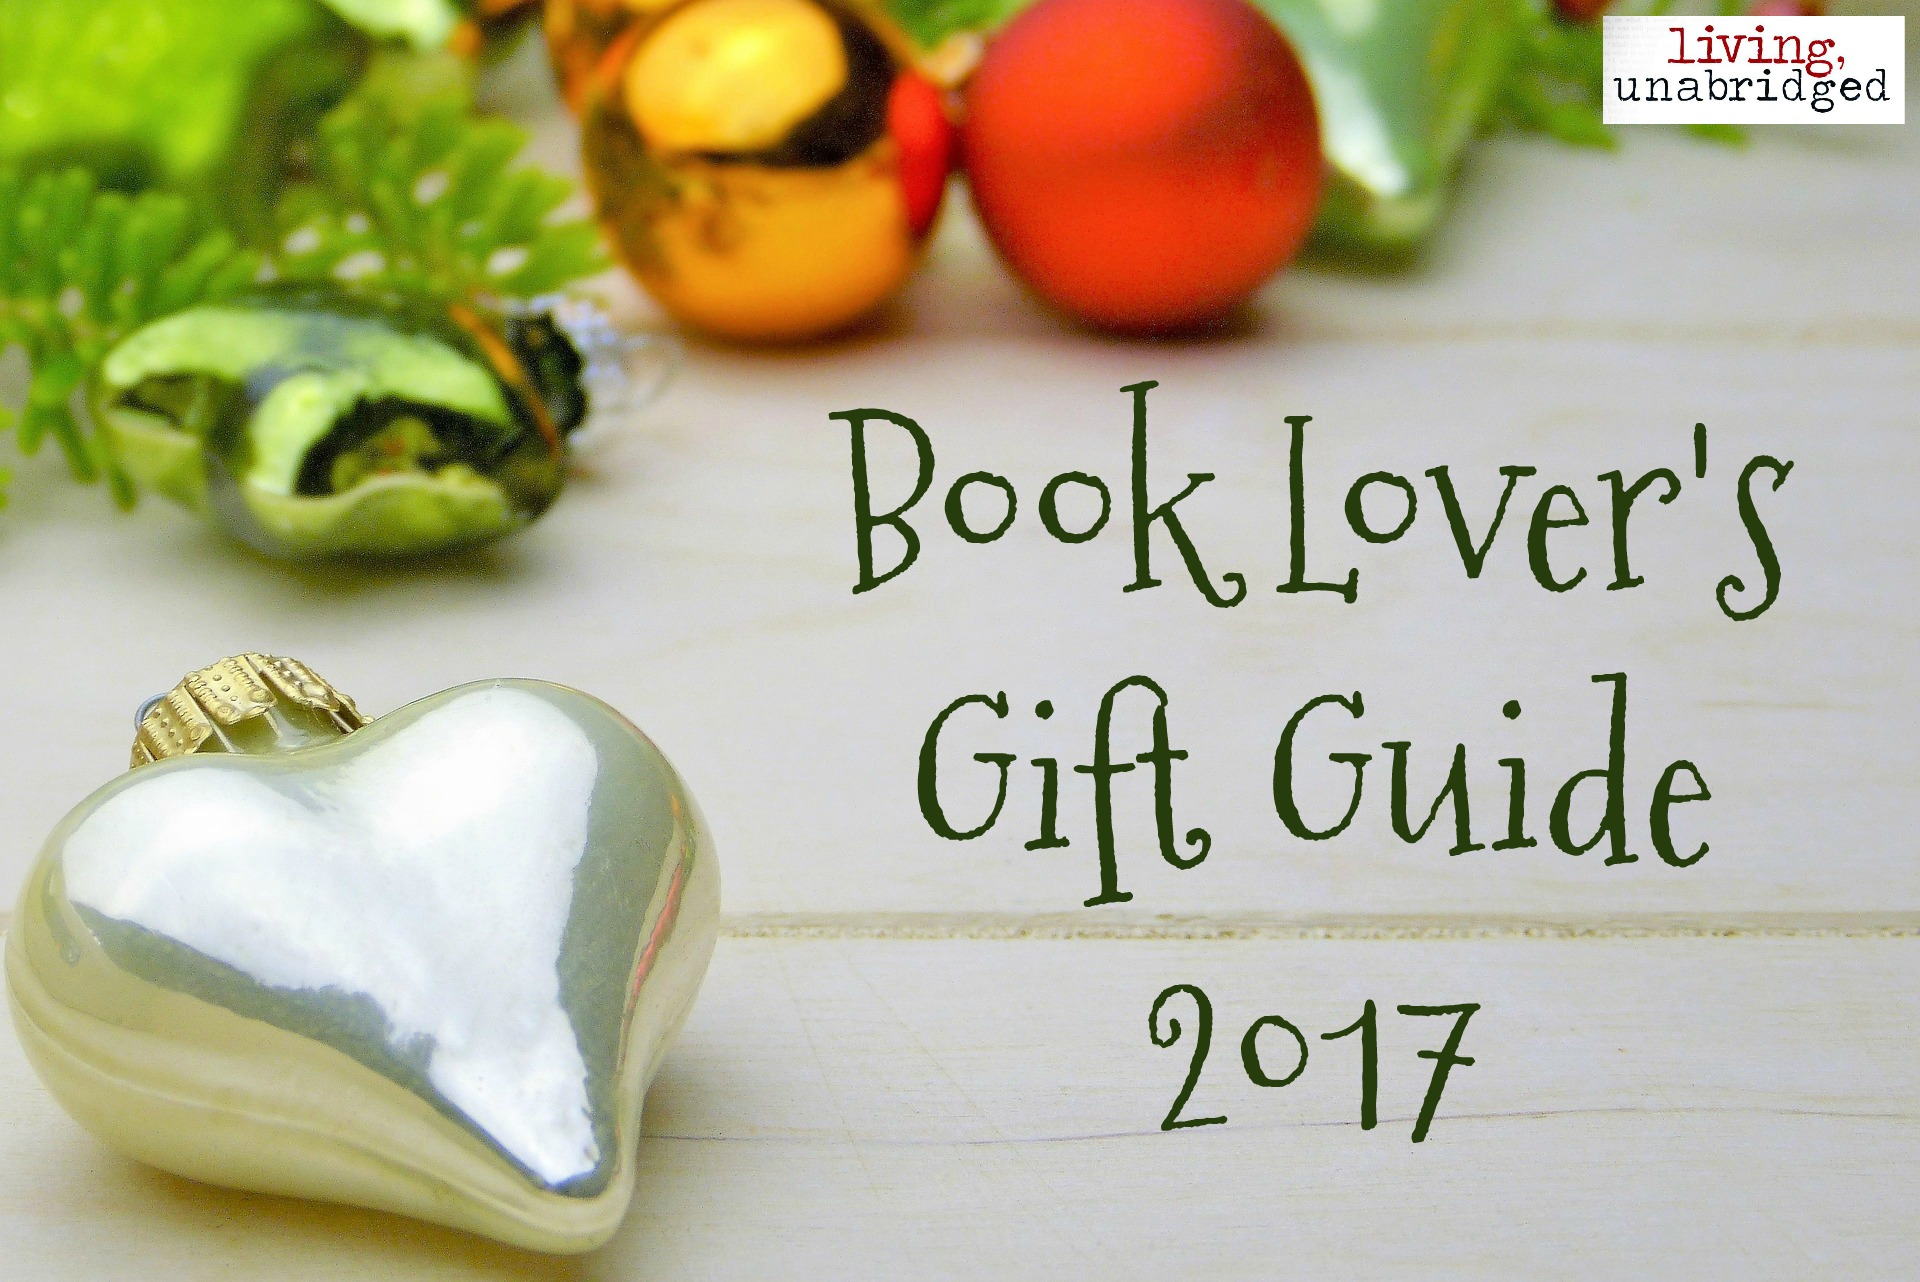 Book Lover Gift Book Lover 39s Gift Guide 2017 Living Unabridged